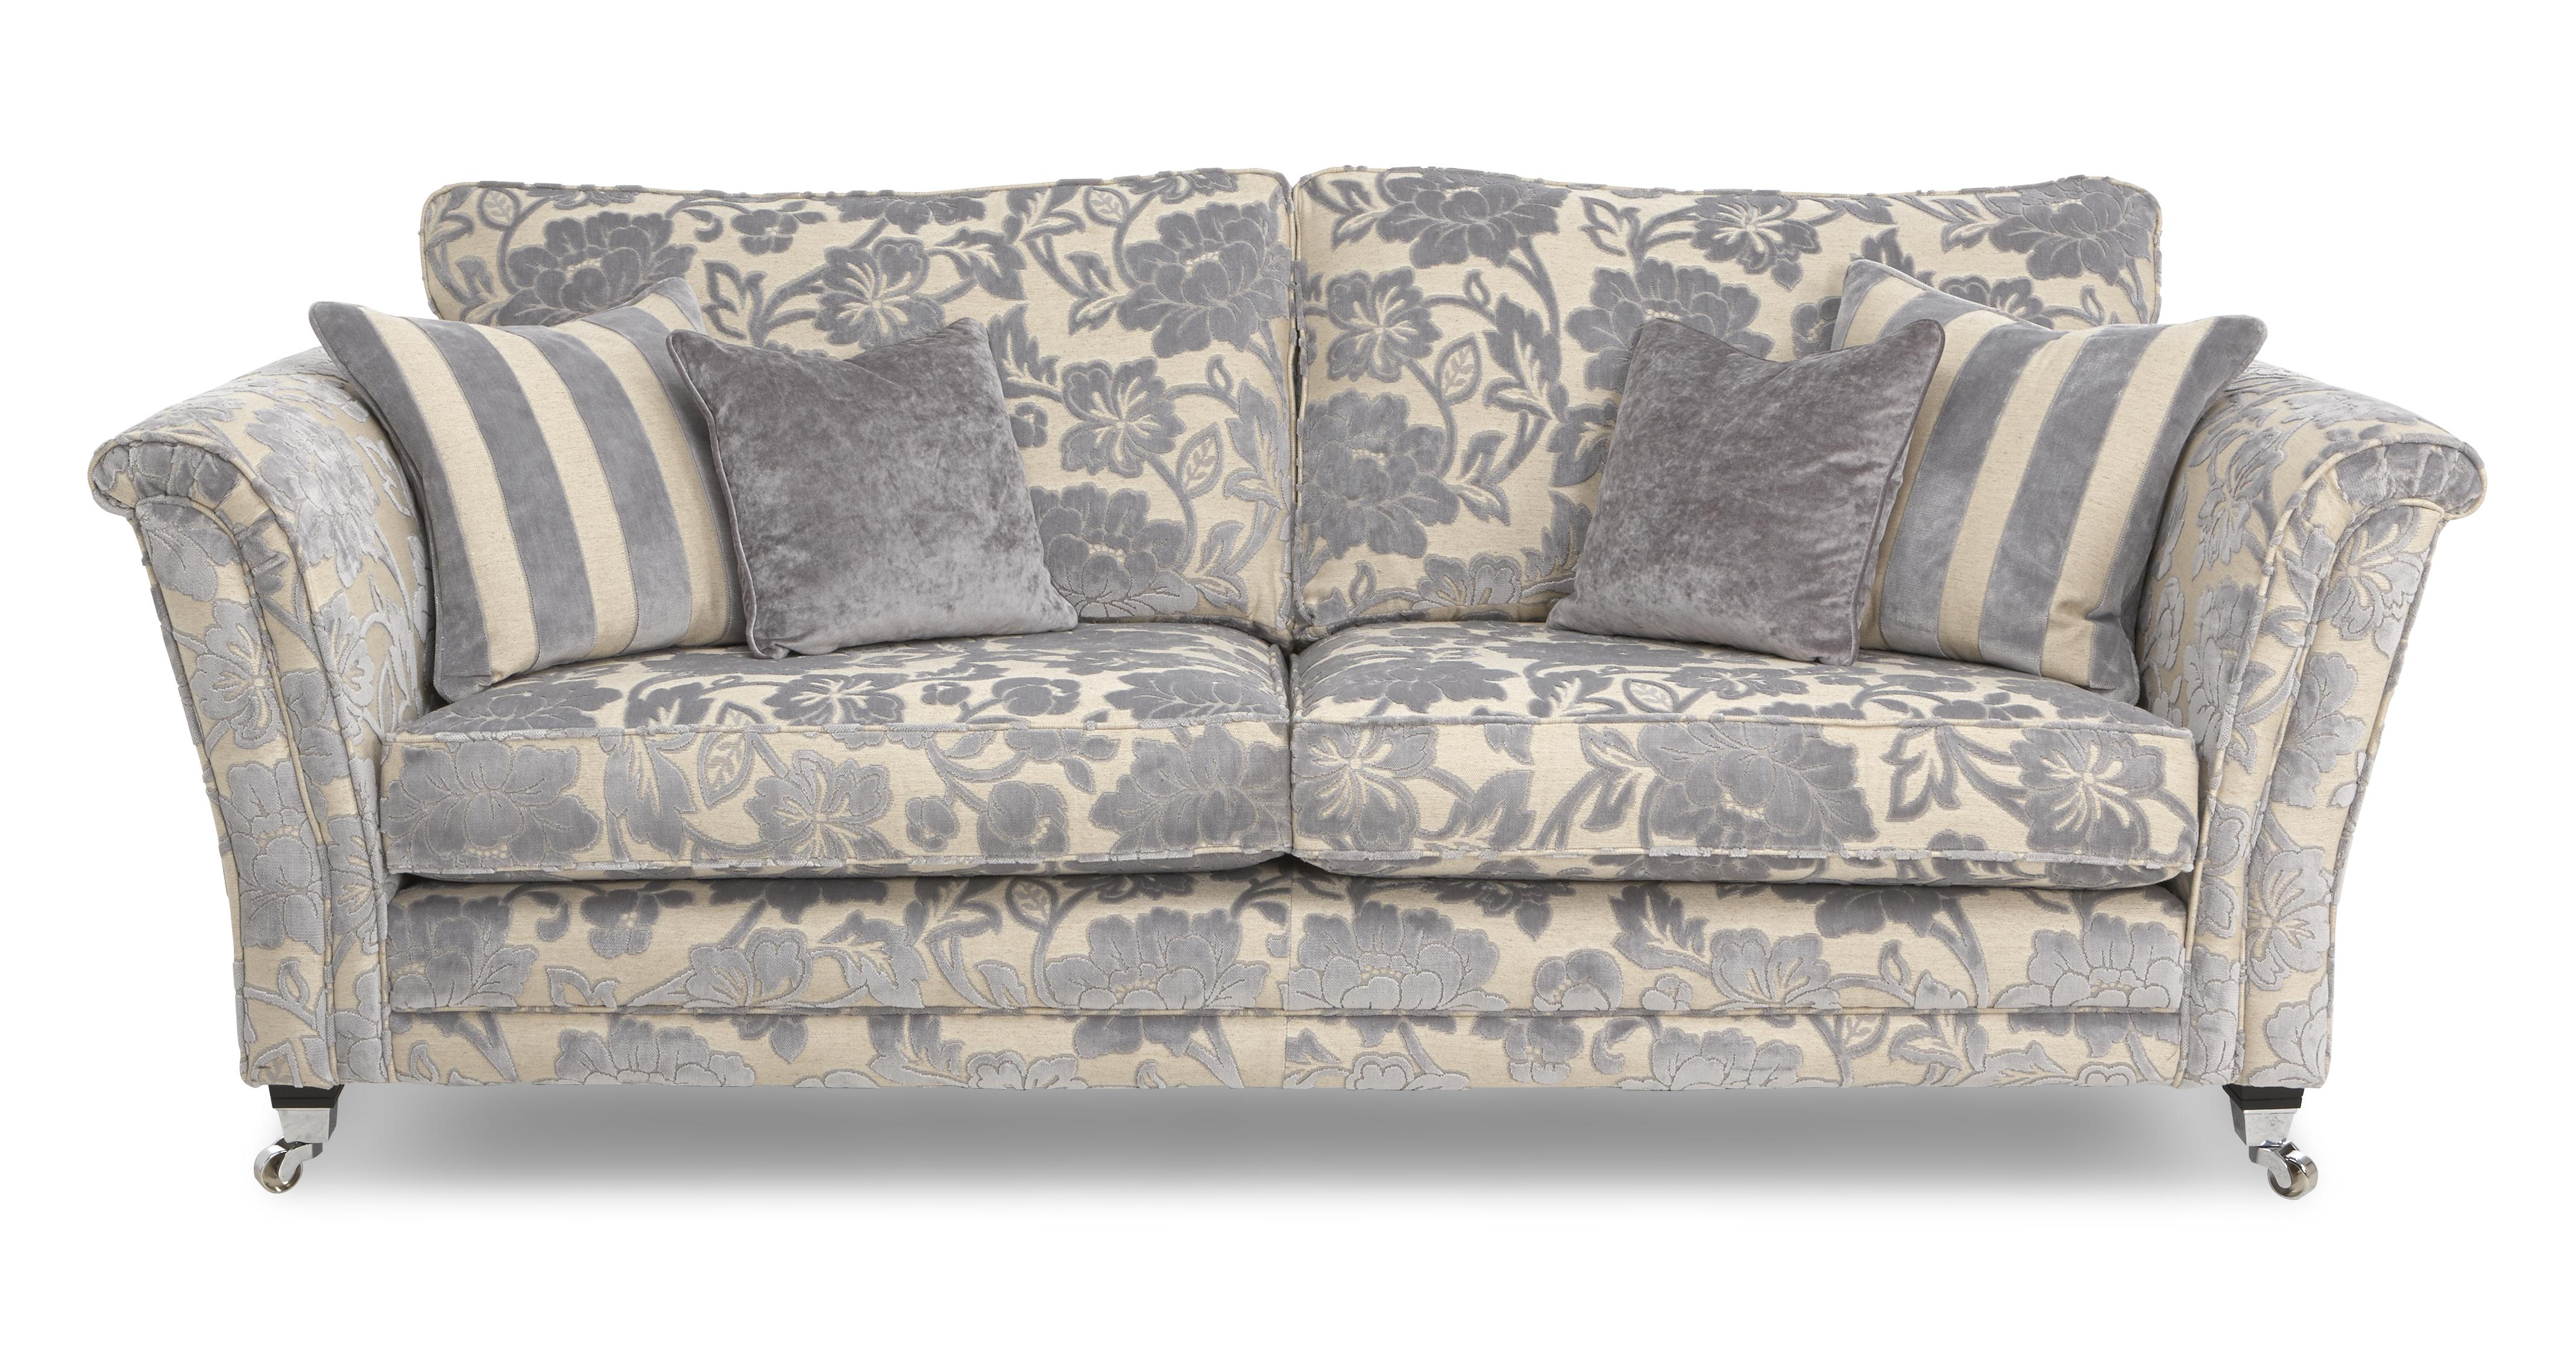 Floral Sofa Captivating With Floral Couches Sofas Photo